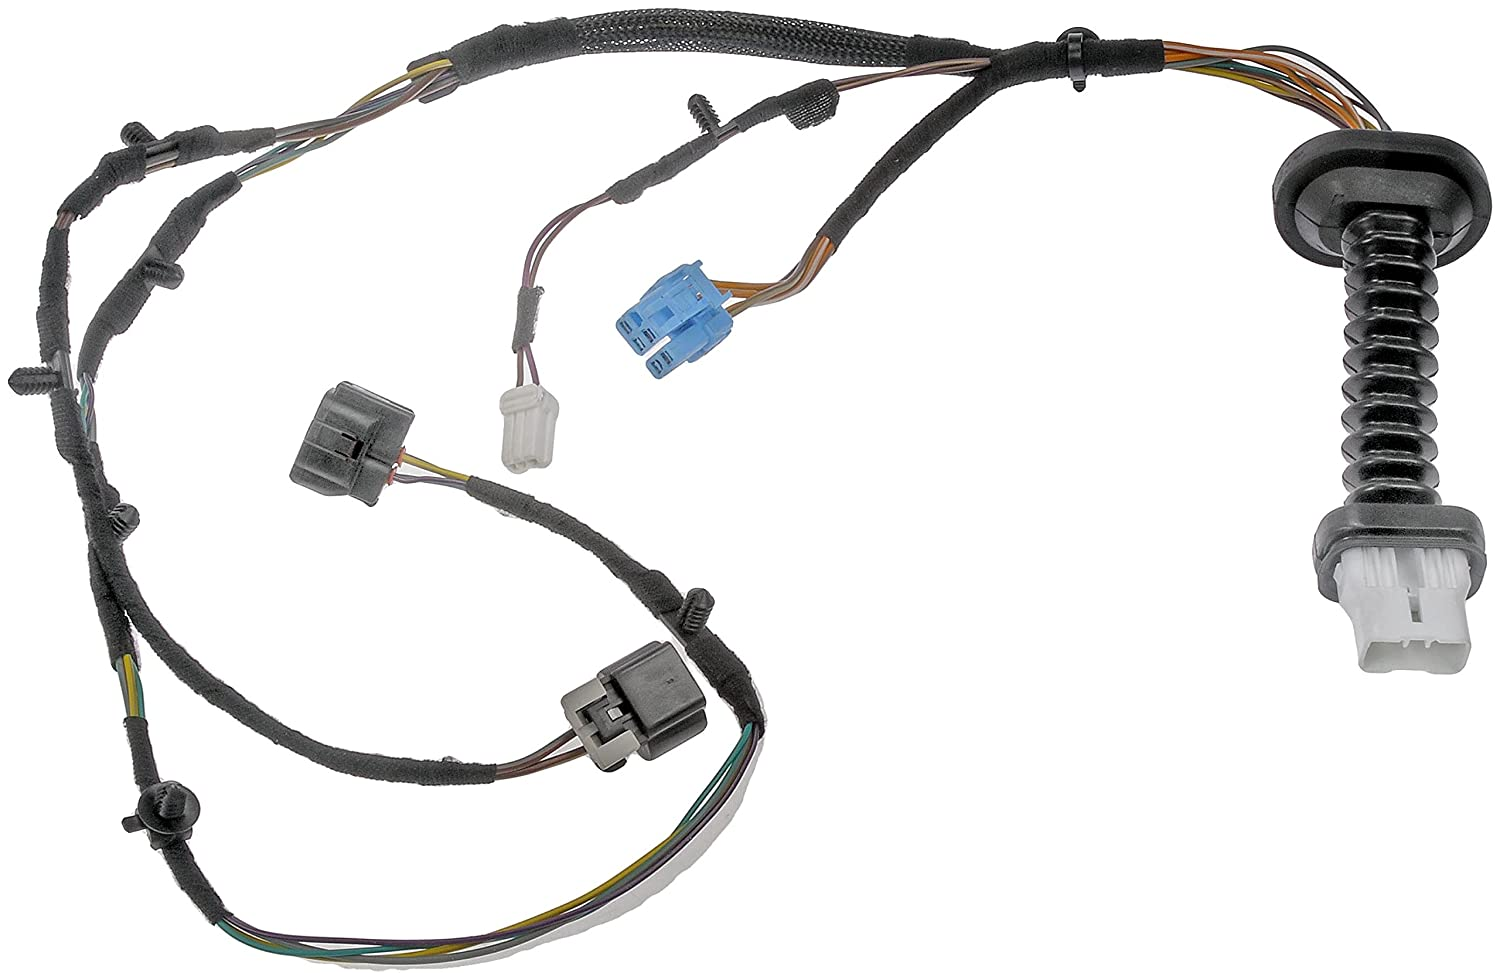 81c1LCEp7lL._SL1500_ amazon com dorman 645 506 door harness with connectors automotive Dodge Transmission Wiring Harness at couponss.co